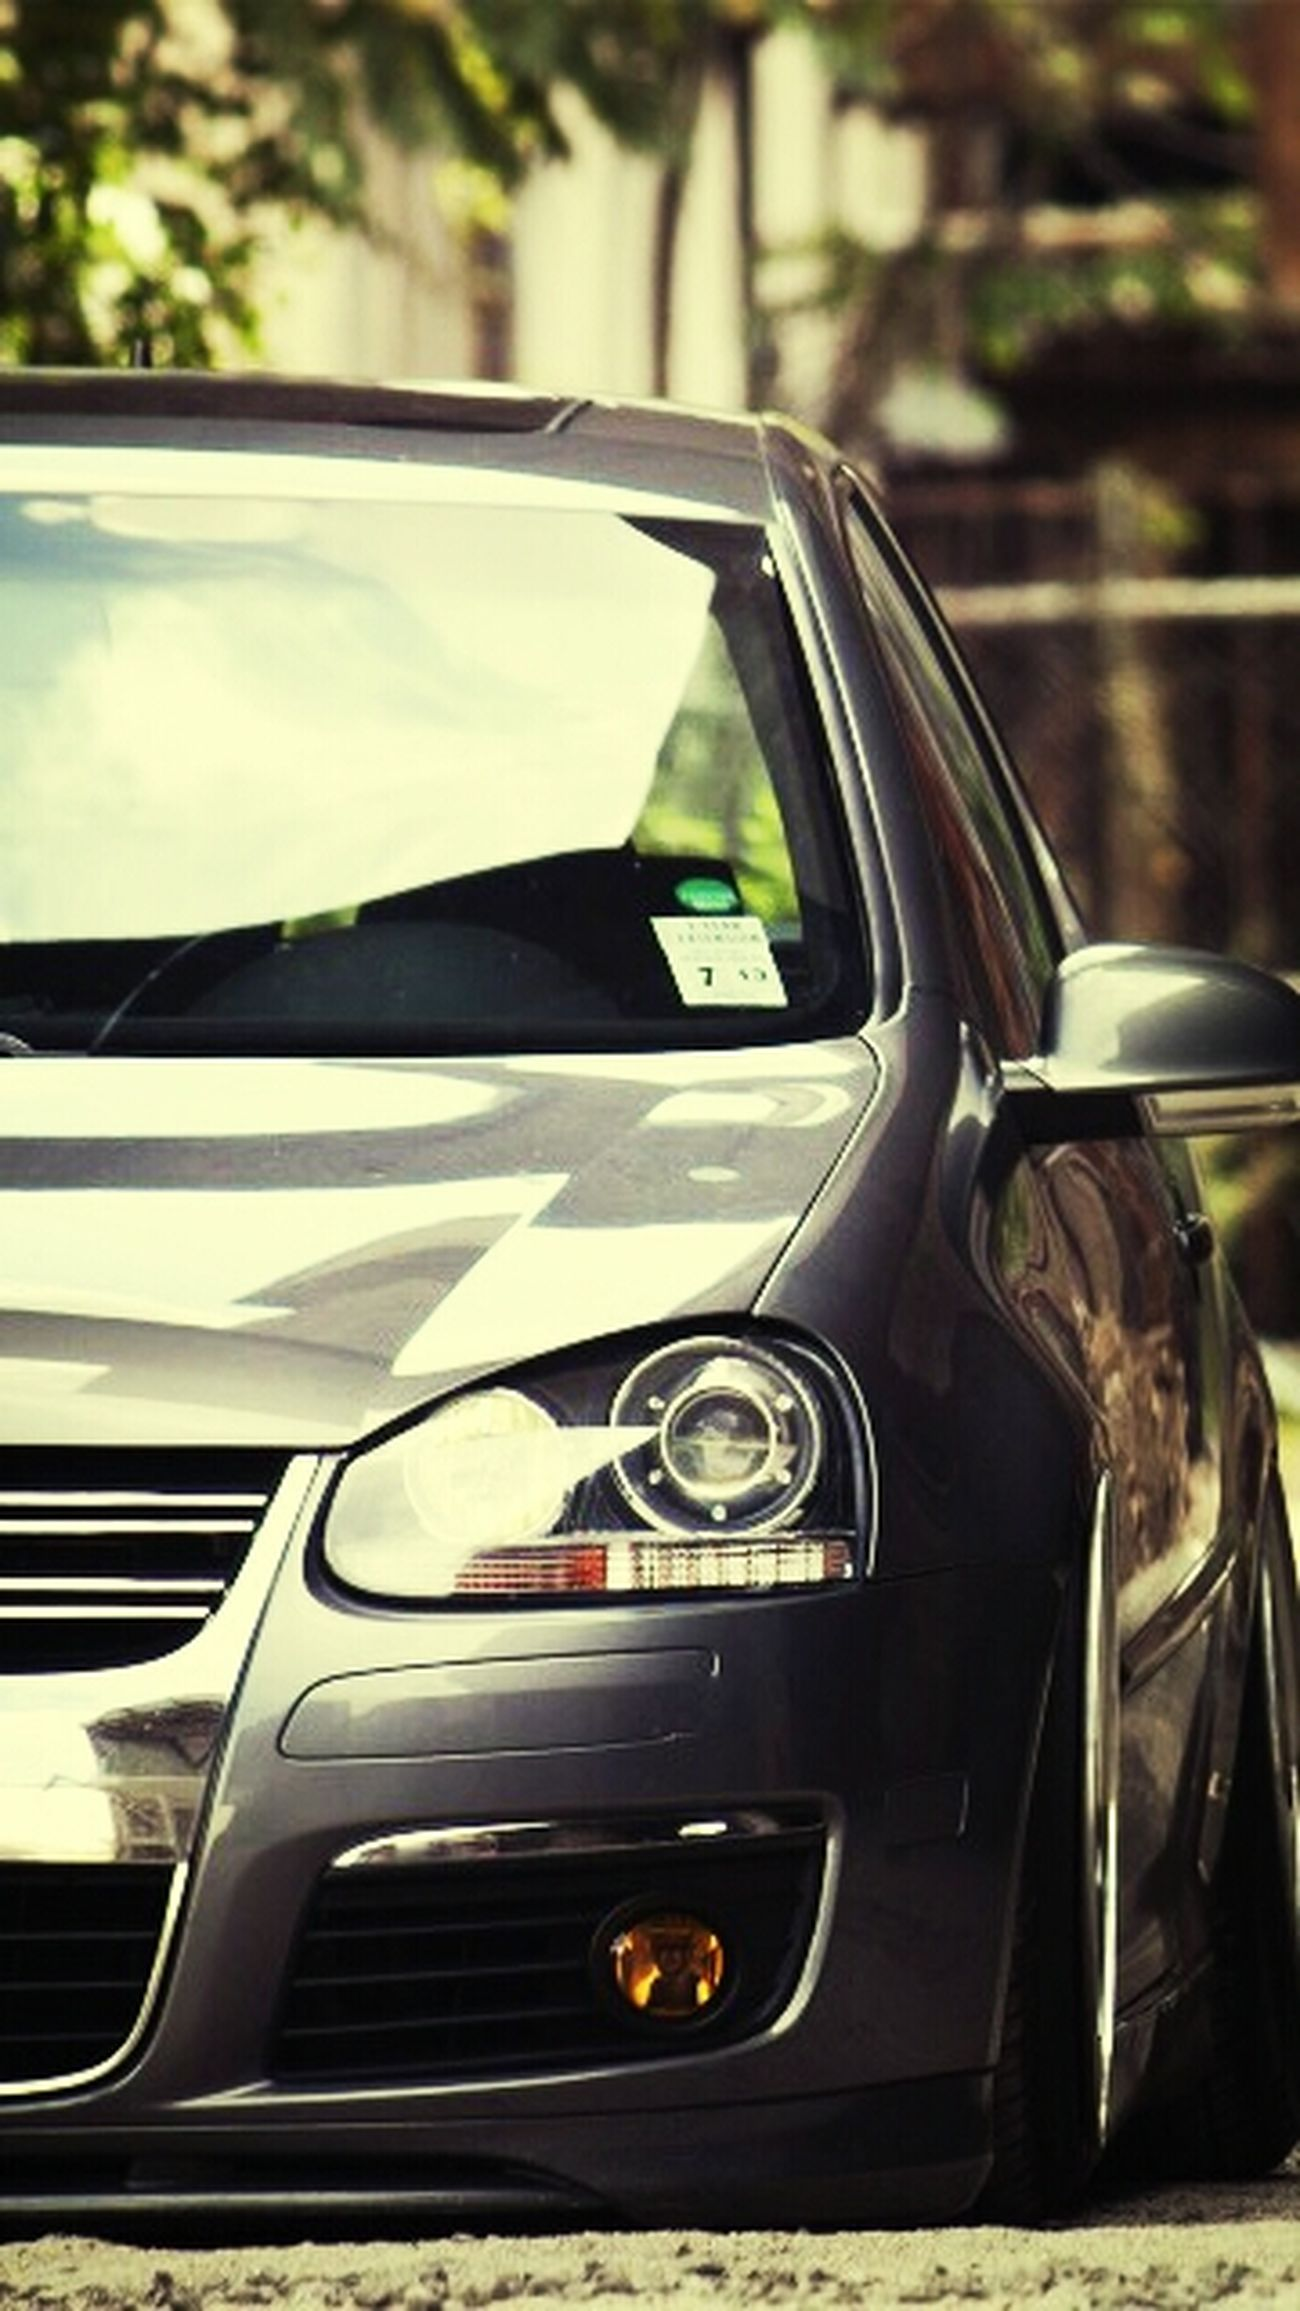 Volkswagen Passat Tuning Car Beaitiful